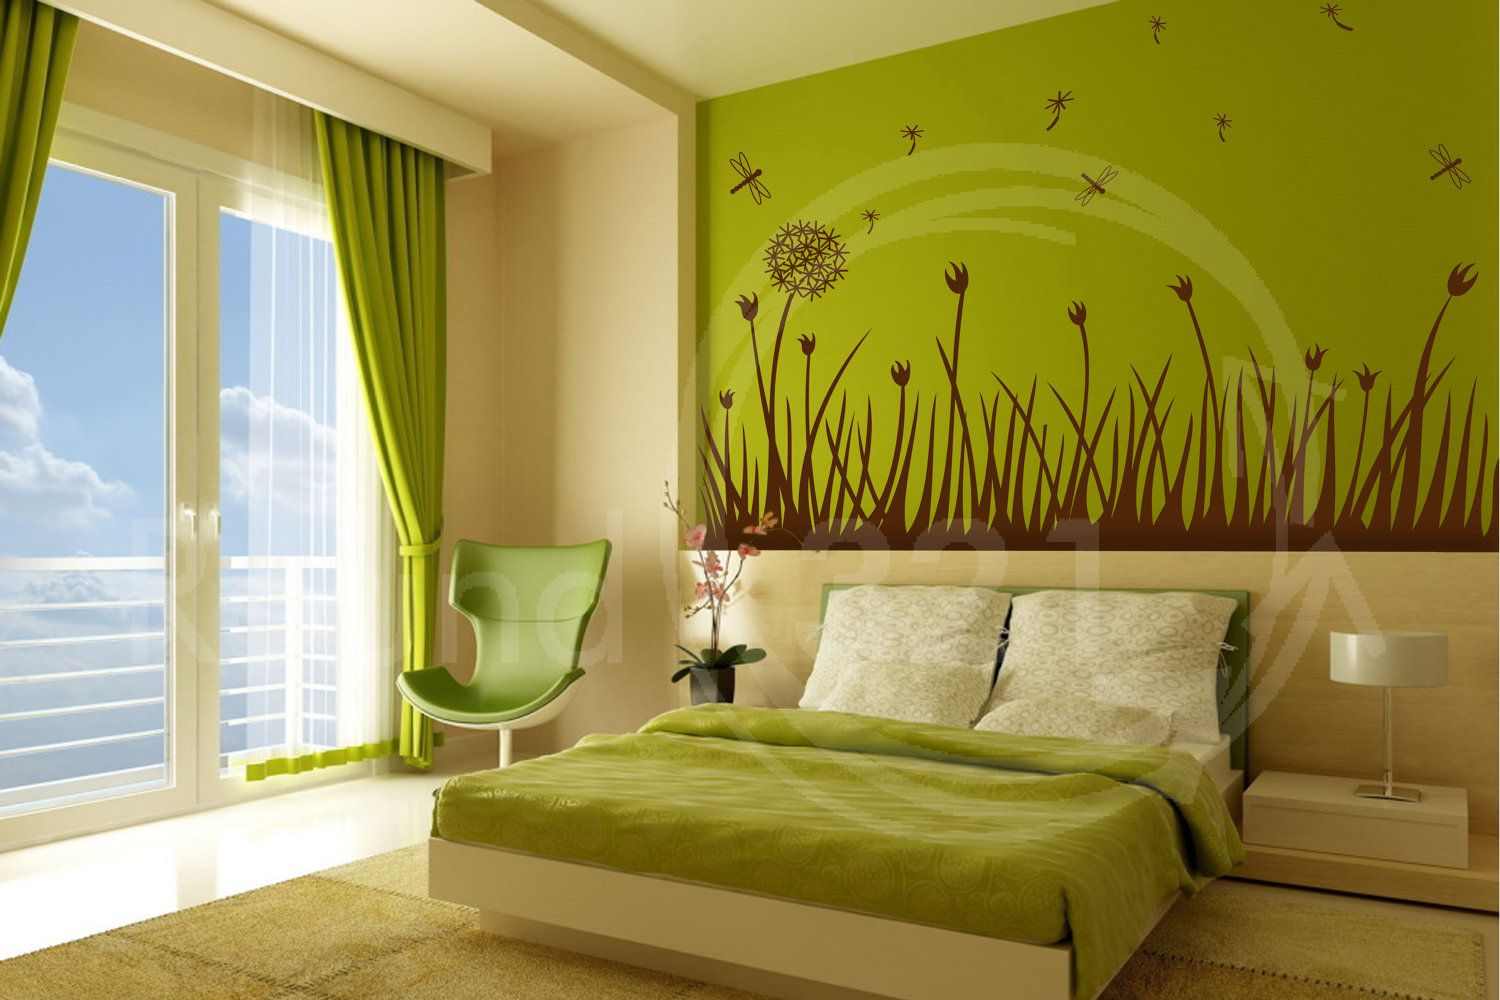 Wall Decal for The Home With Dandelion & Fireflies by Round321 ...